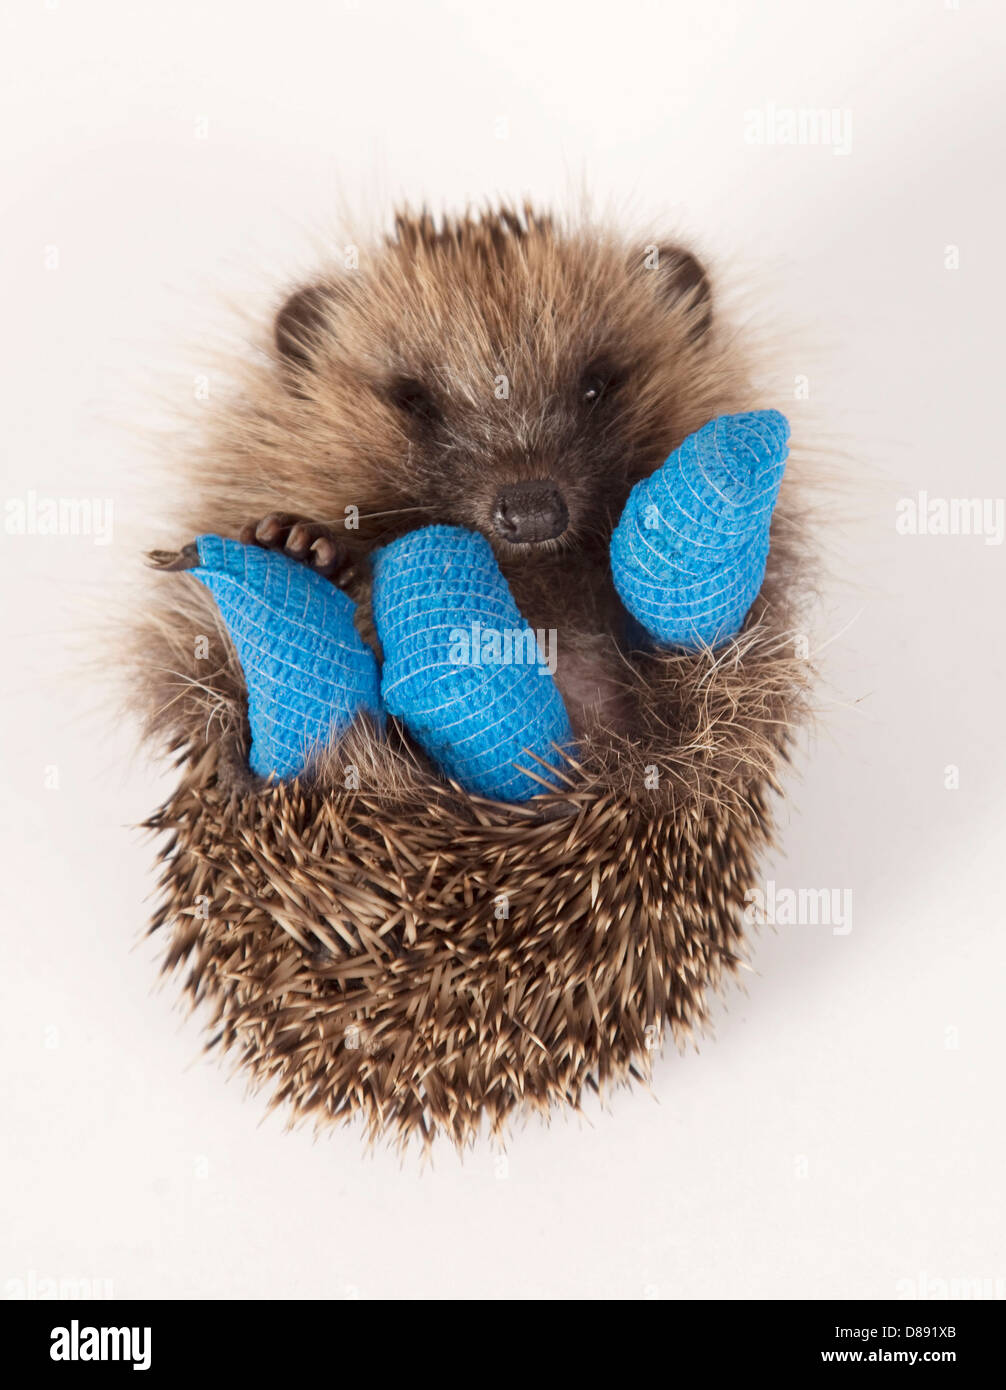 Juvenile European hedgehog with three legs in bandages - Stock Image